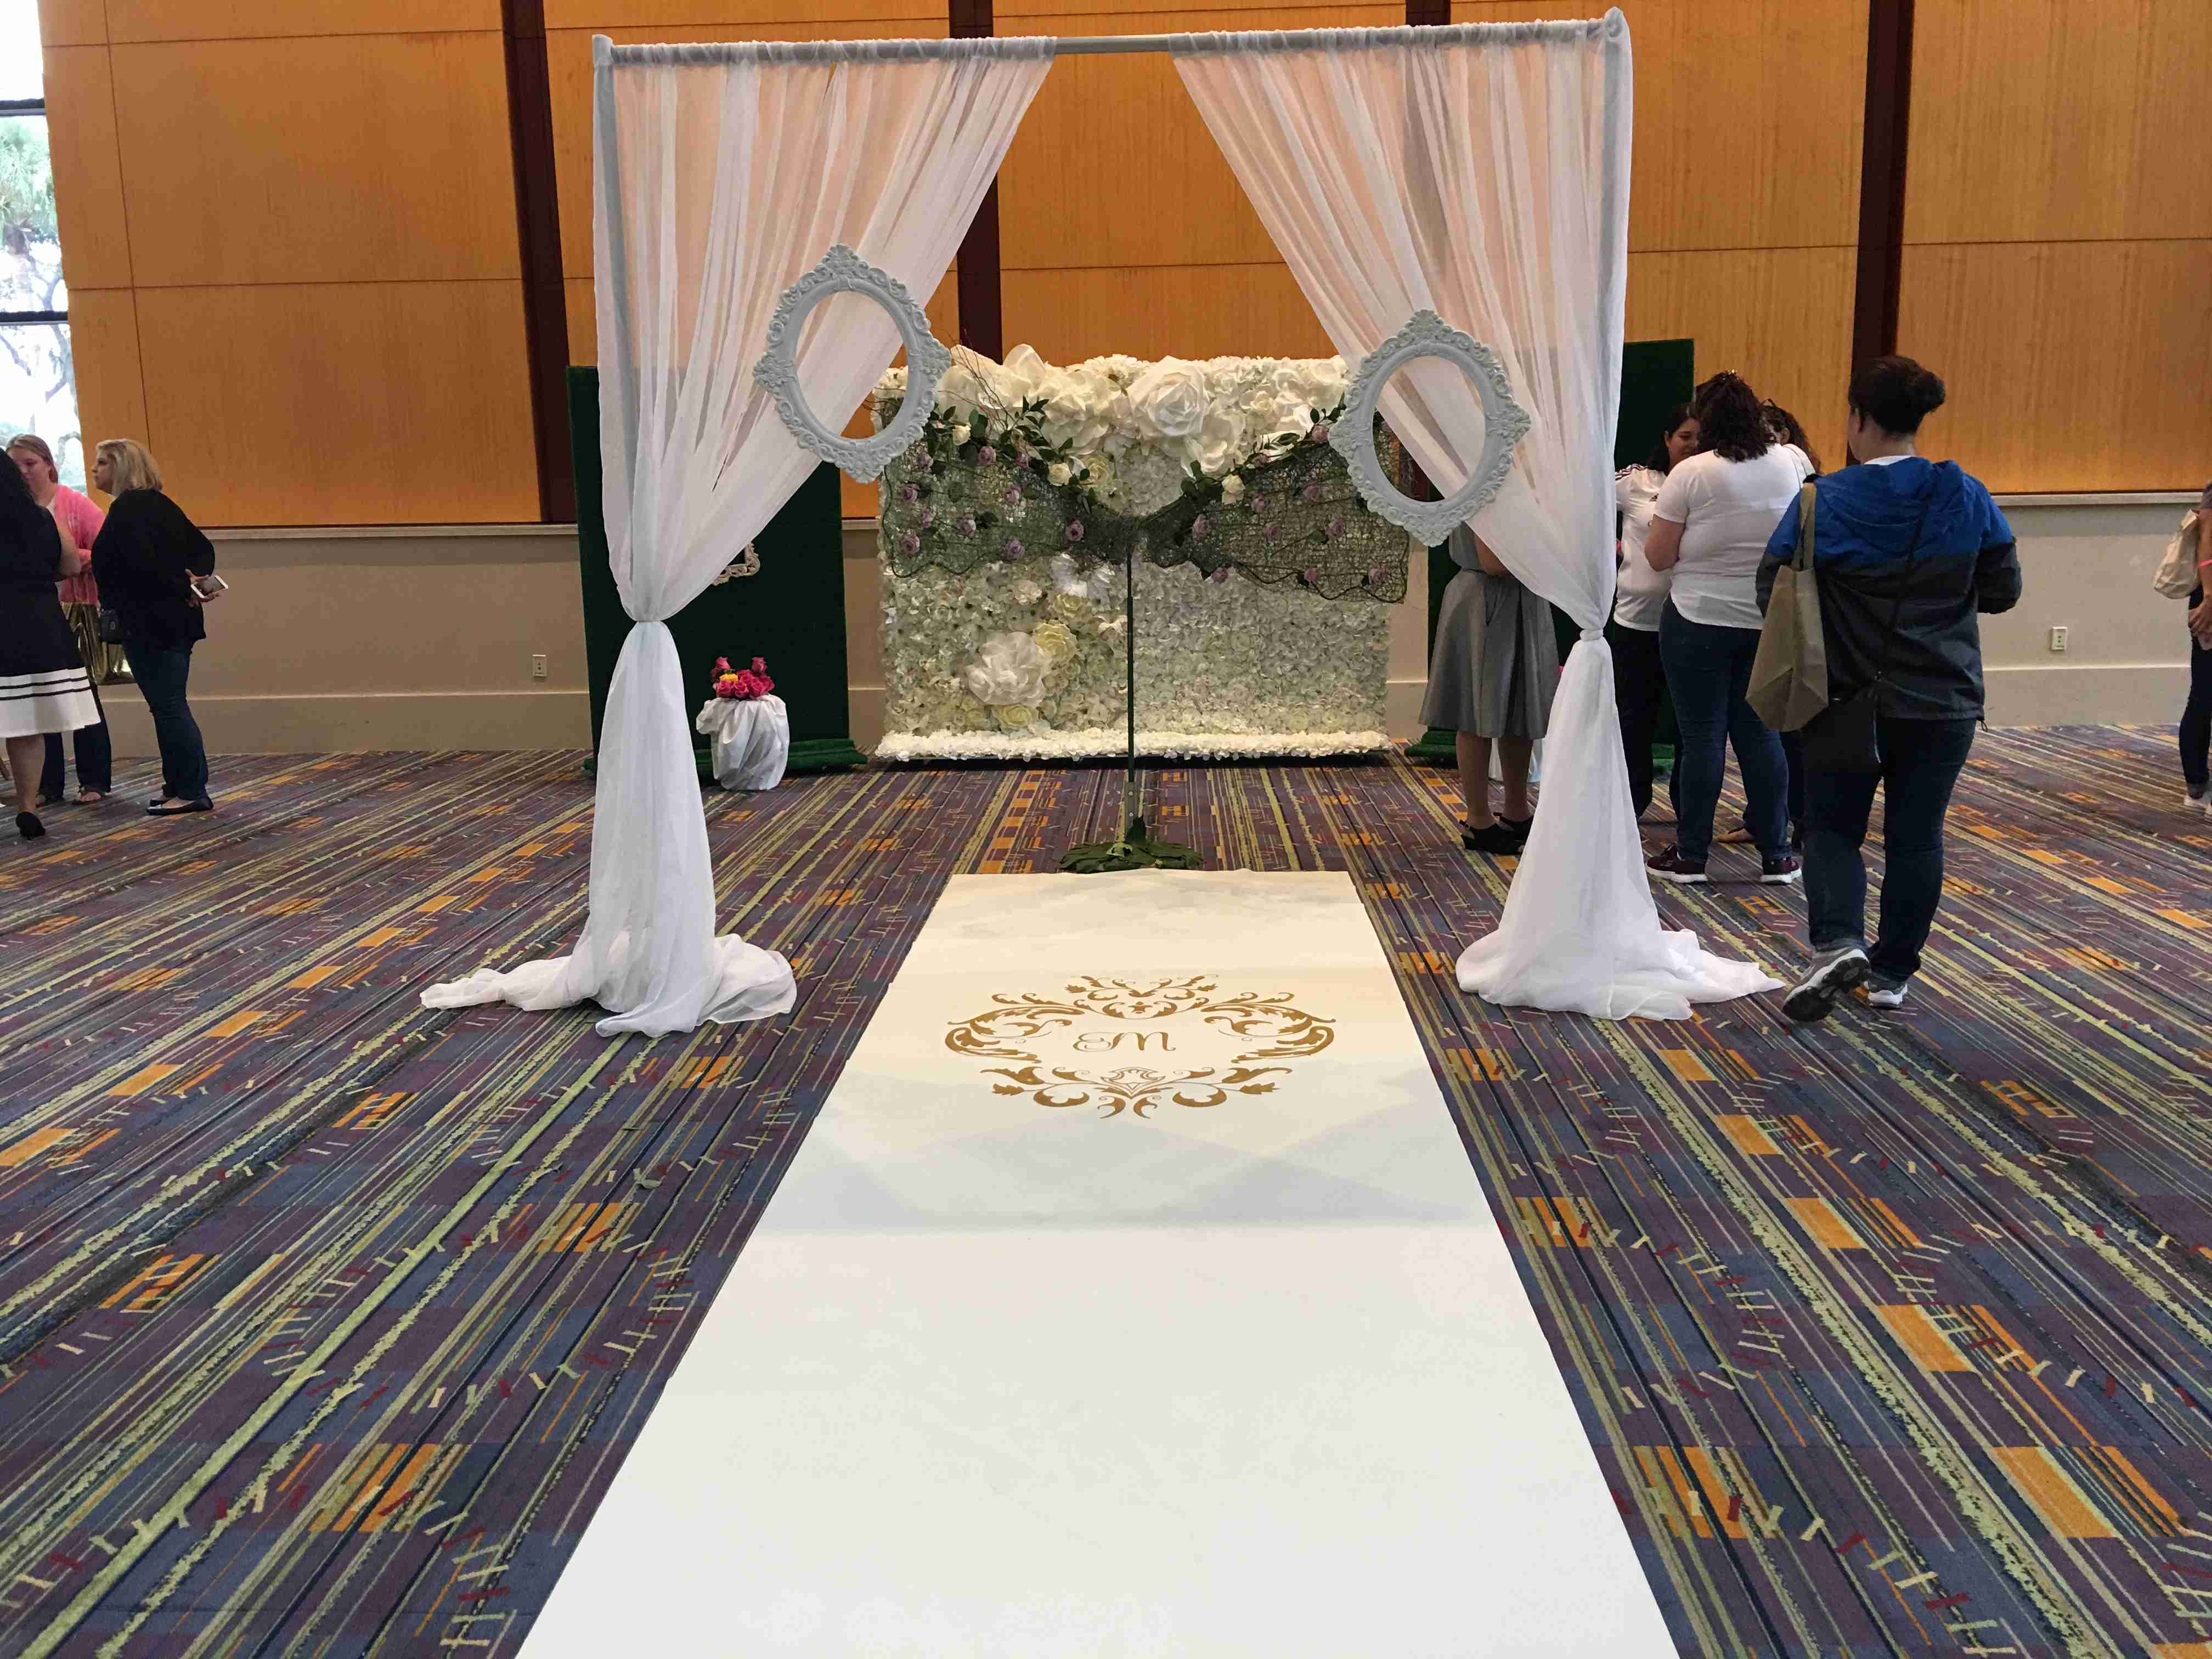 The Perfect Wedding show took place at the Orlando World Center Marriott